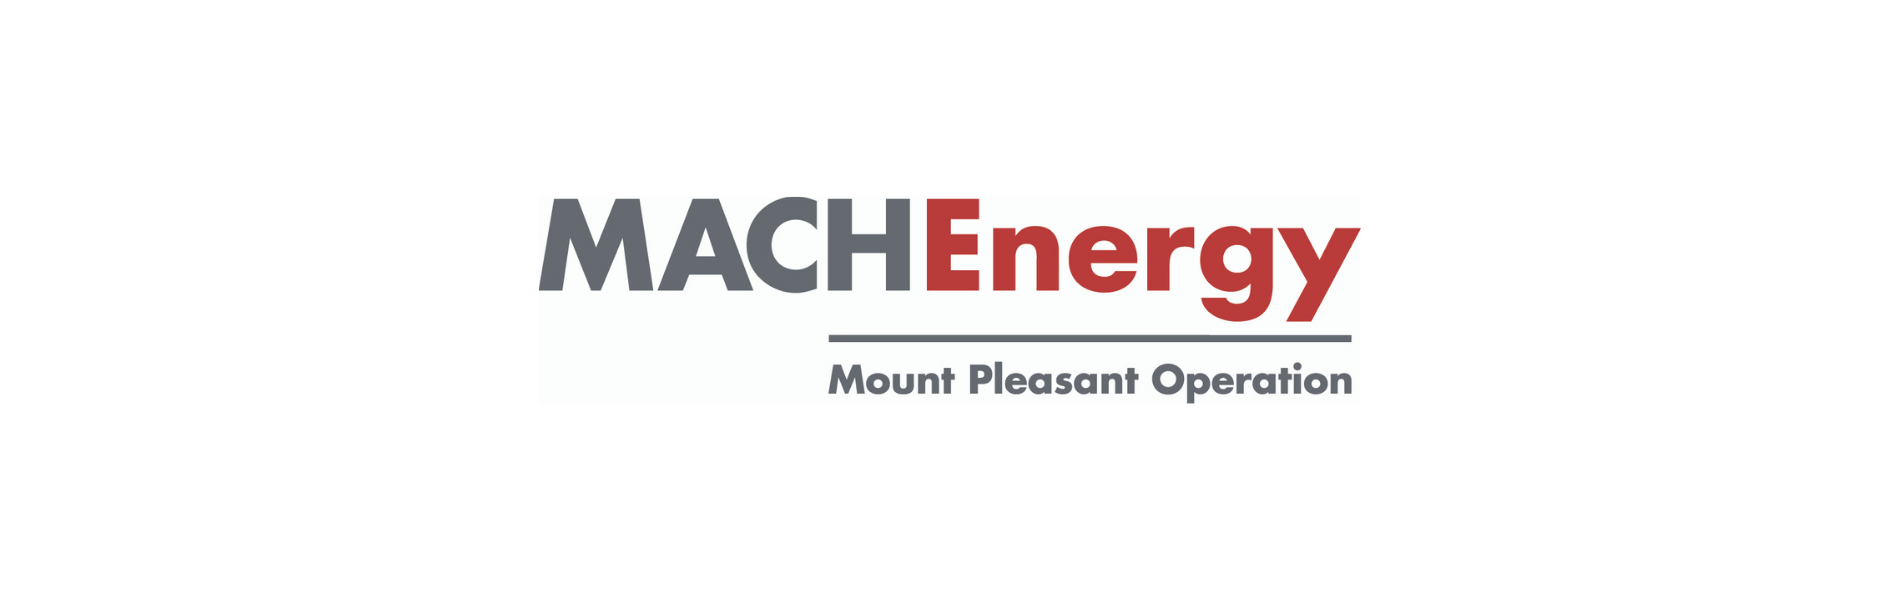 MACH Energy Mount Pleasant Operation